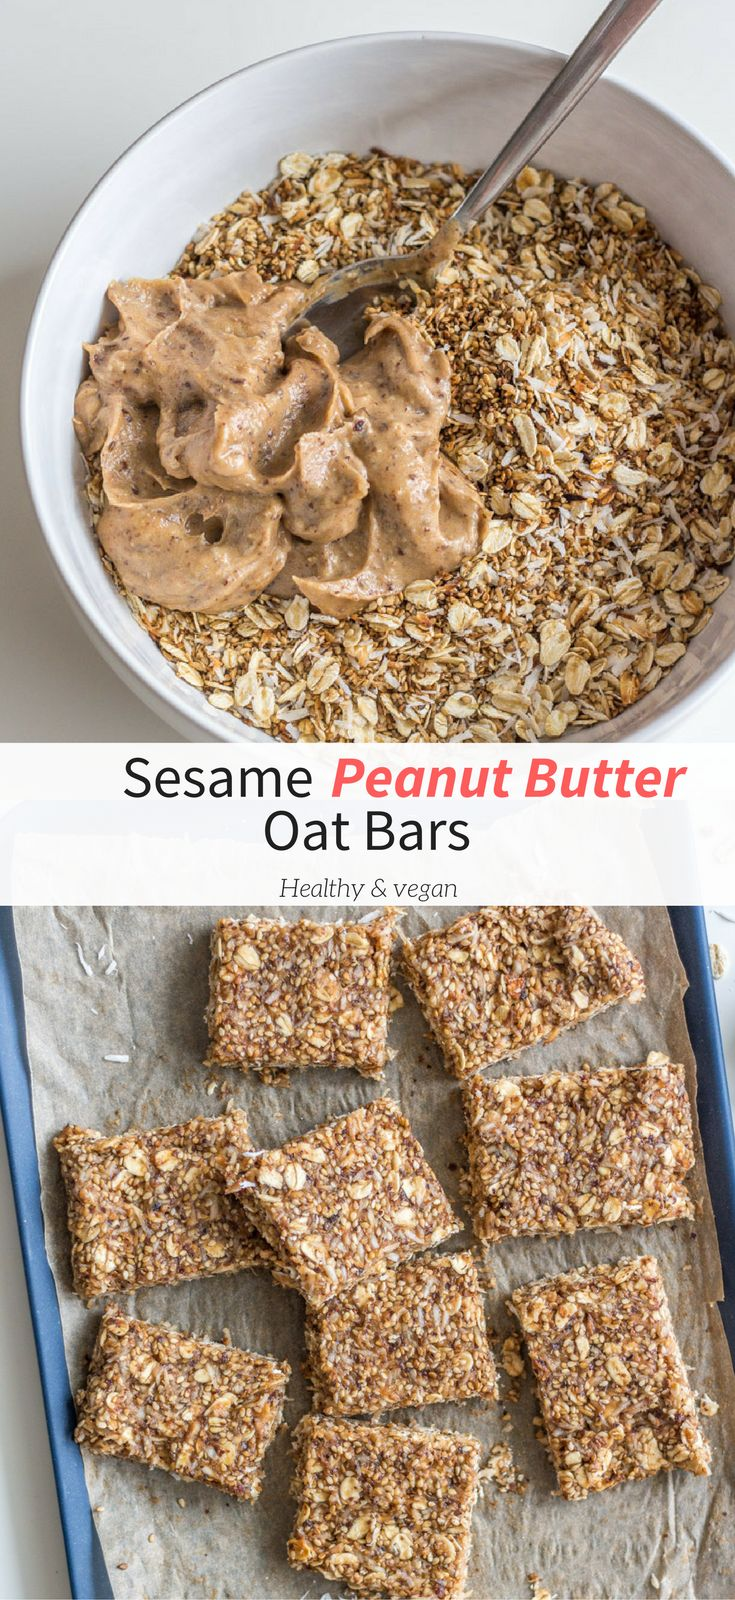 Try these Sesame Peanut Butter Oat Bars for a healthy snack, light breakfast, or dessert. Simple, flavourful, satisfying, and so tasty. Healthy vegan recipes|healthy| vegan| snack| dessert| recipes| vegetarian| The Mostly Healthy | snack bar